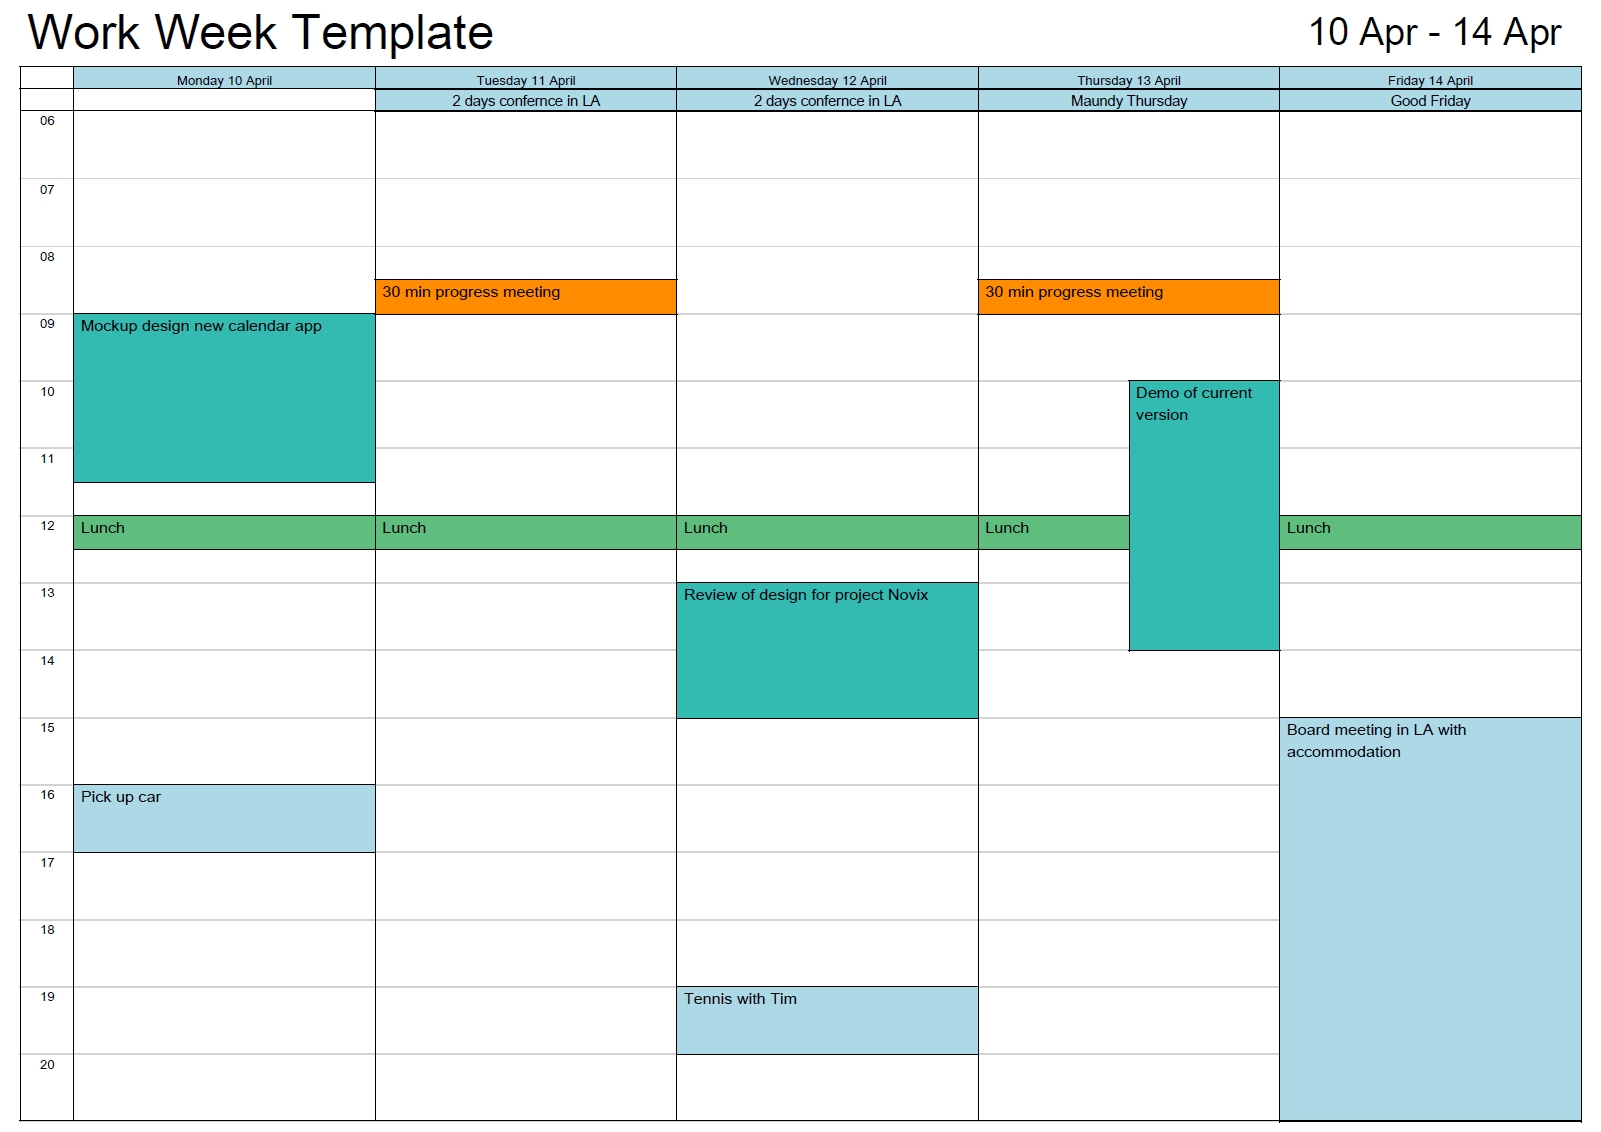 Outlook Printable Calendar In A4/a3 | Outlook Calendar Print